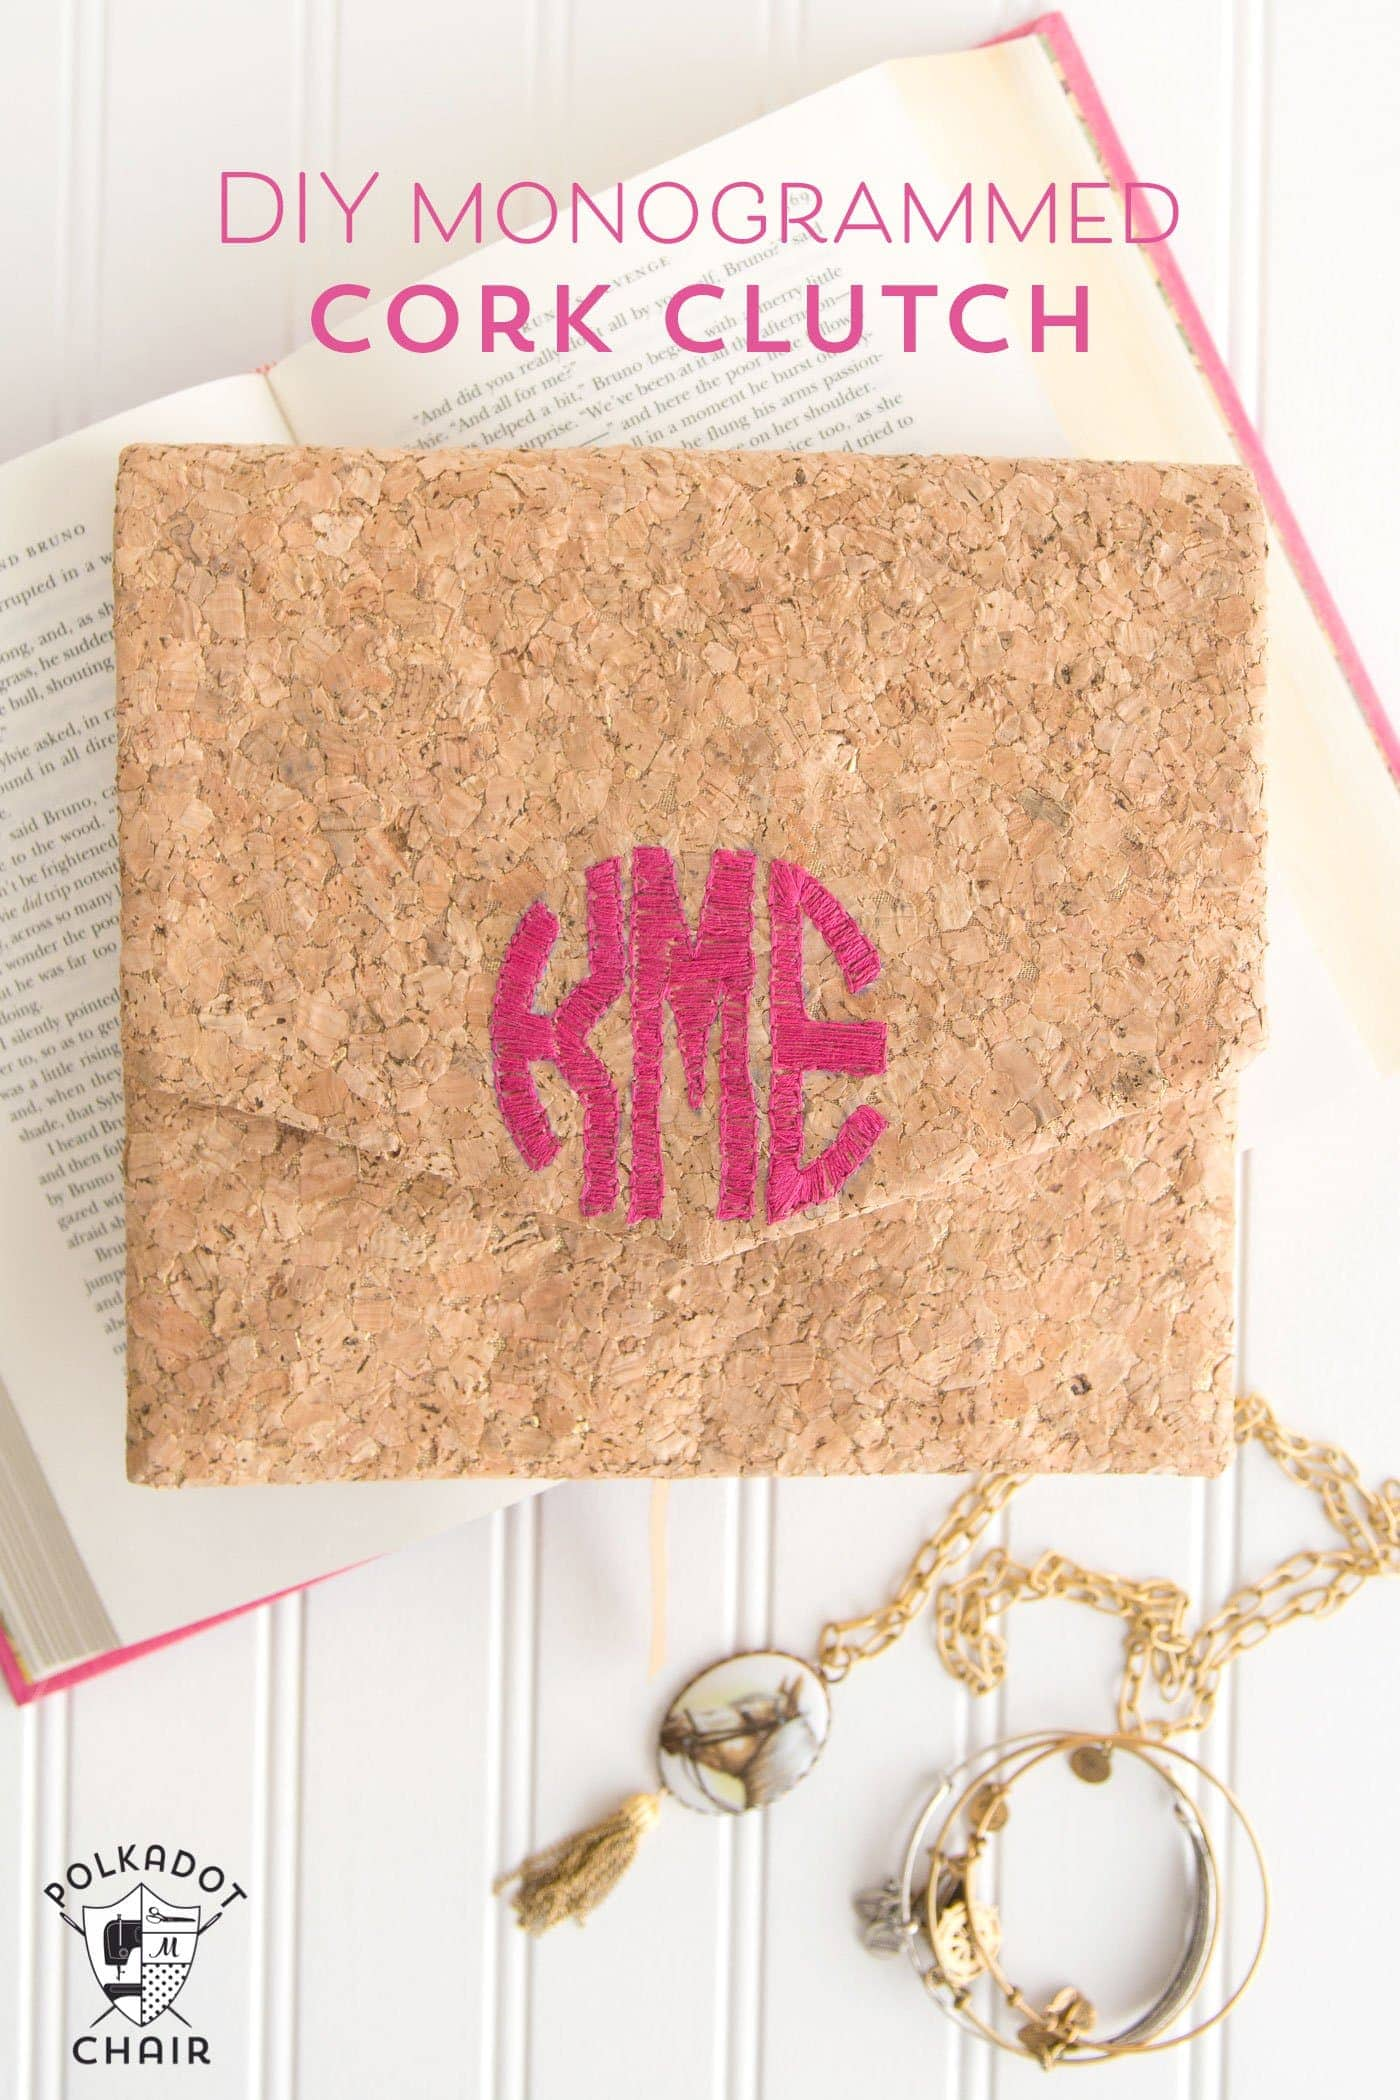 DIY Monogrammed Cork Clutch Tutorial